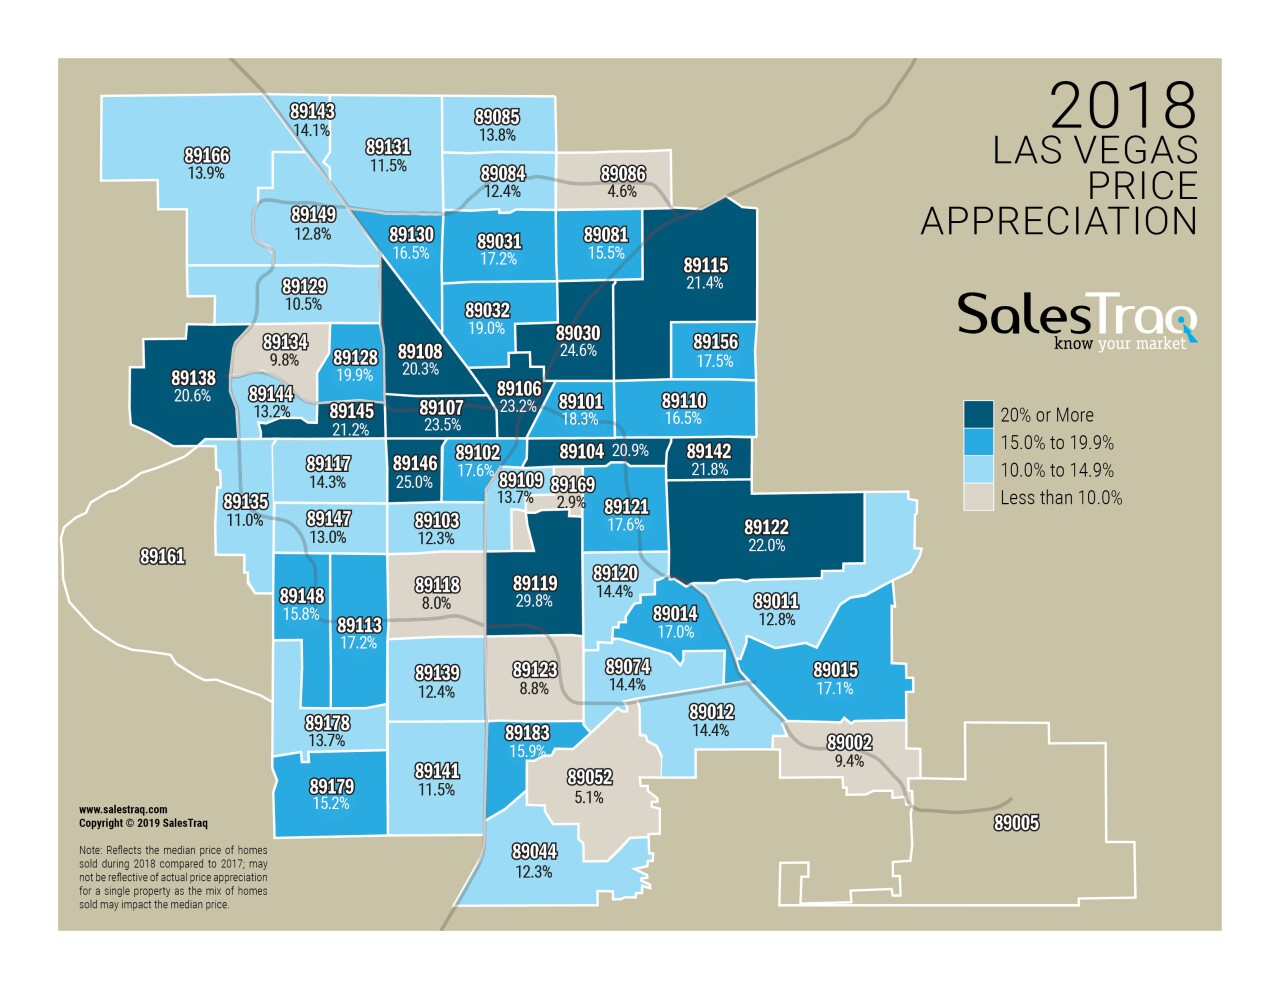 SalesTraq release Las Vegas zip code appreciation maps for 2018